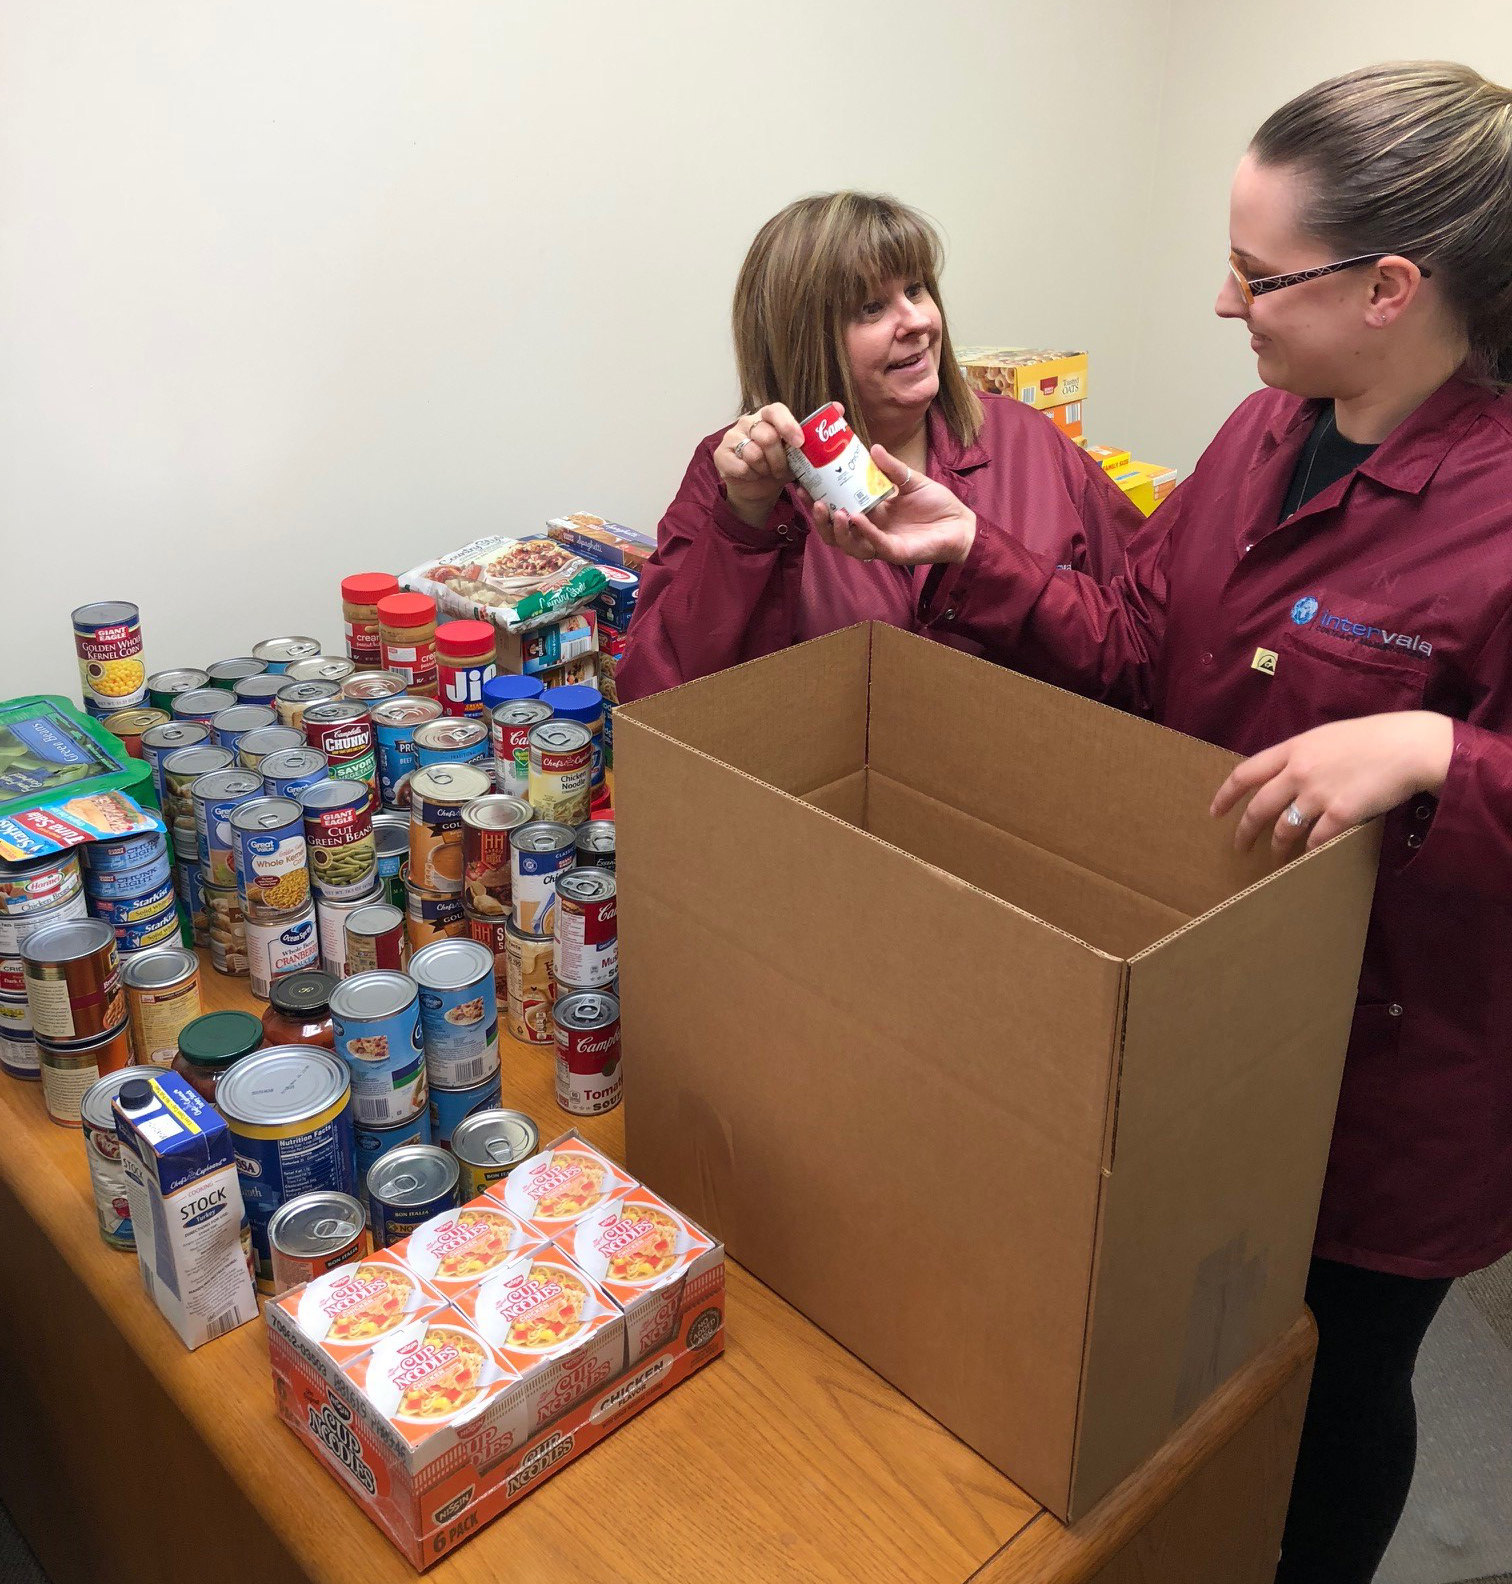 Intervala team members Toni Faulk and Courtney Shaffer pack up donated groceries for delivery to the food pantry.